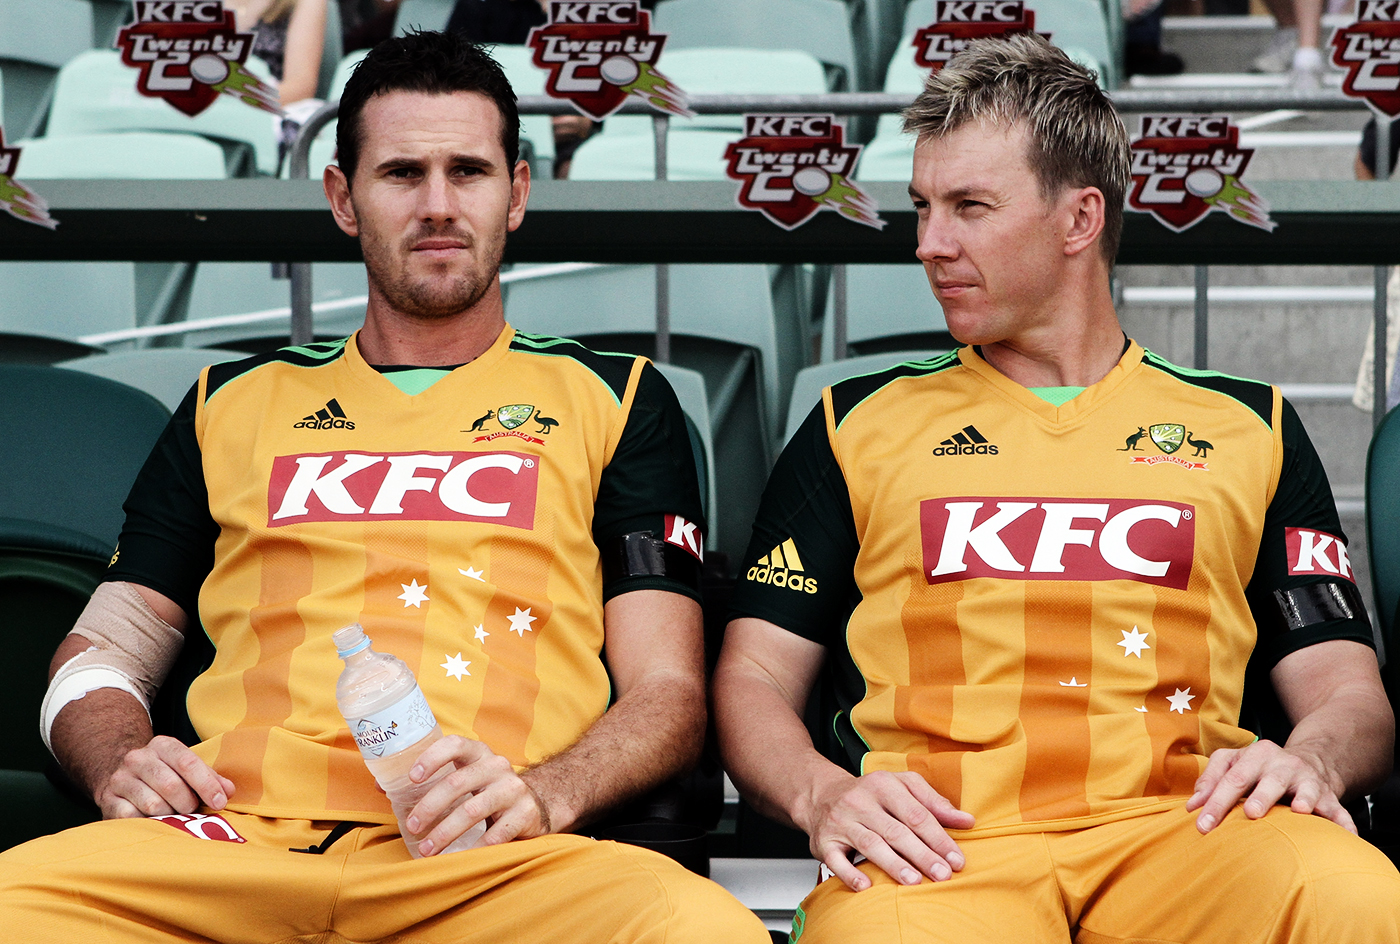 Bone crushers: Australia were lucky to have Shaun Tait and Brett Lee play in the same period, although they only featured in 19 internationals together - three Tests, 13 ODIs, and three T20Is